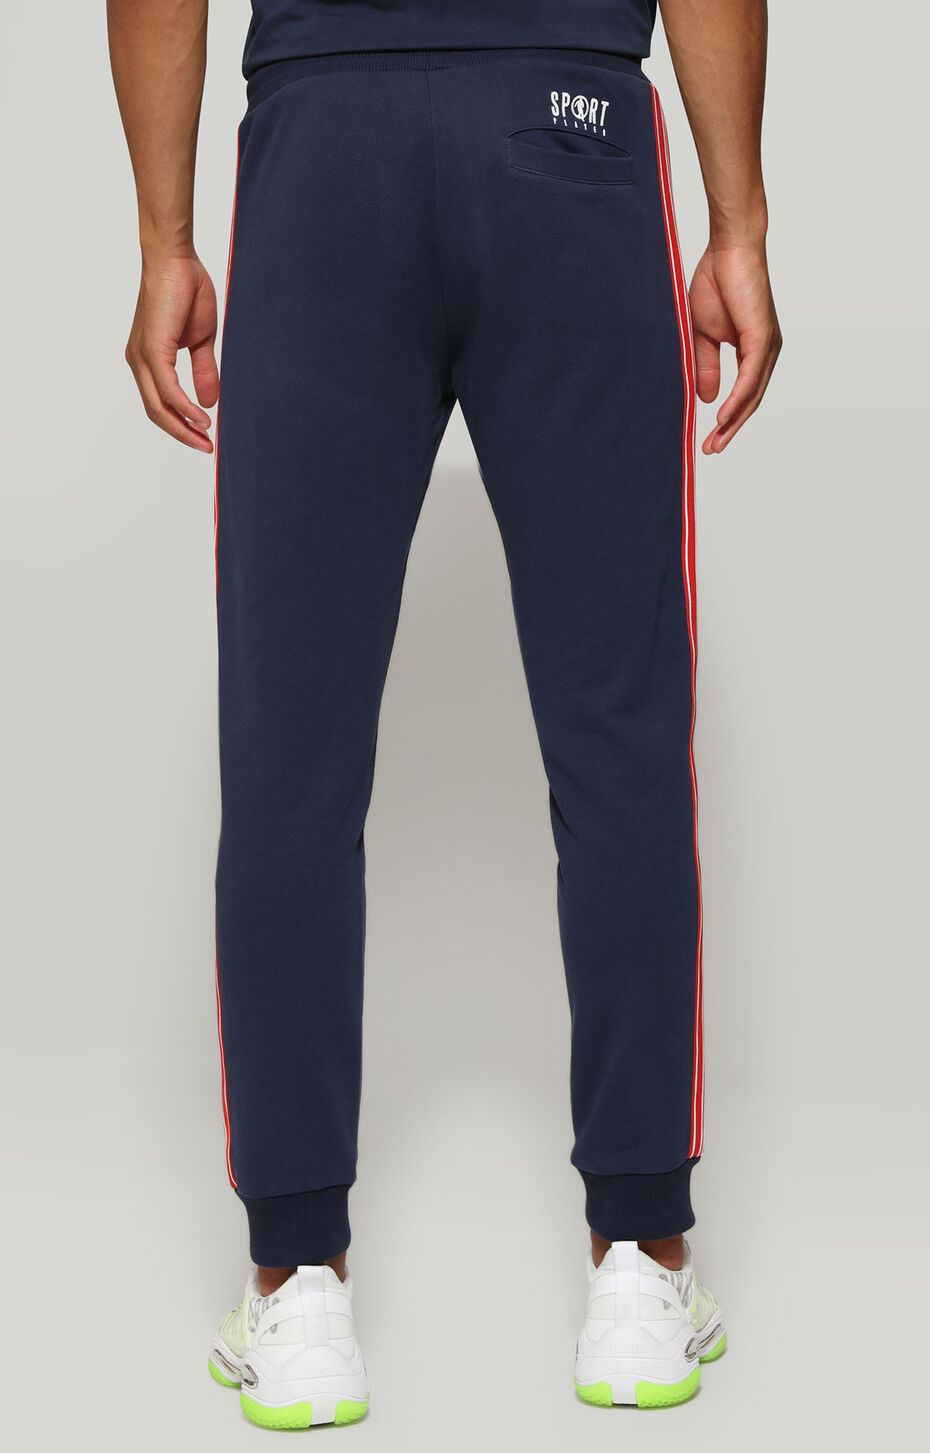 FLEECE PANTS, Синий, hi-res-1